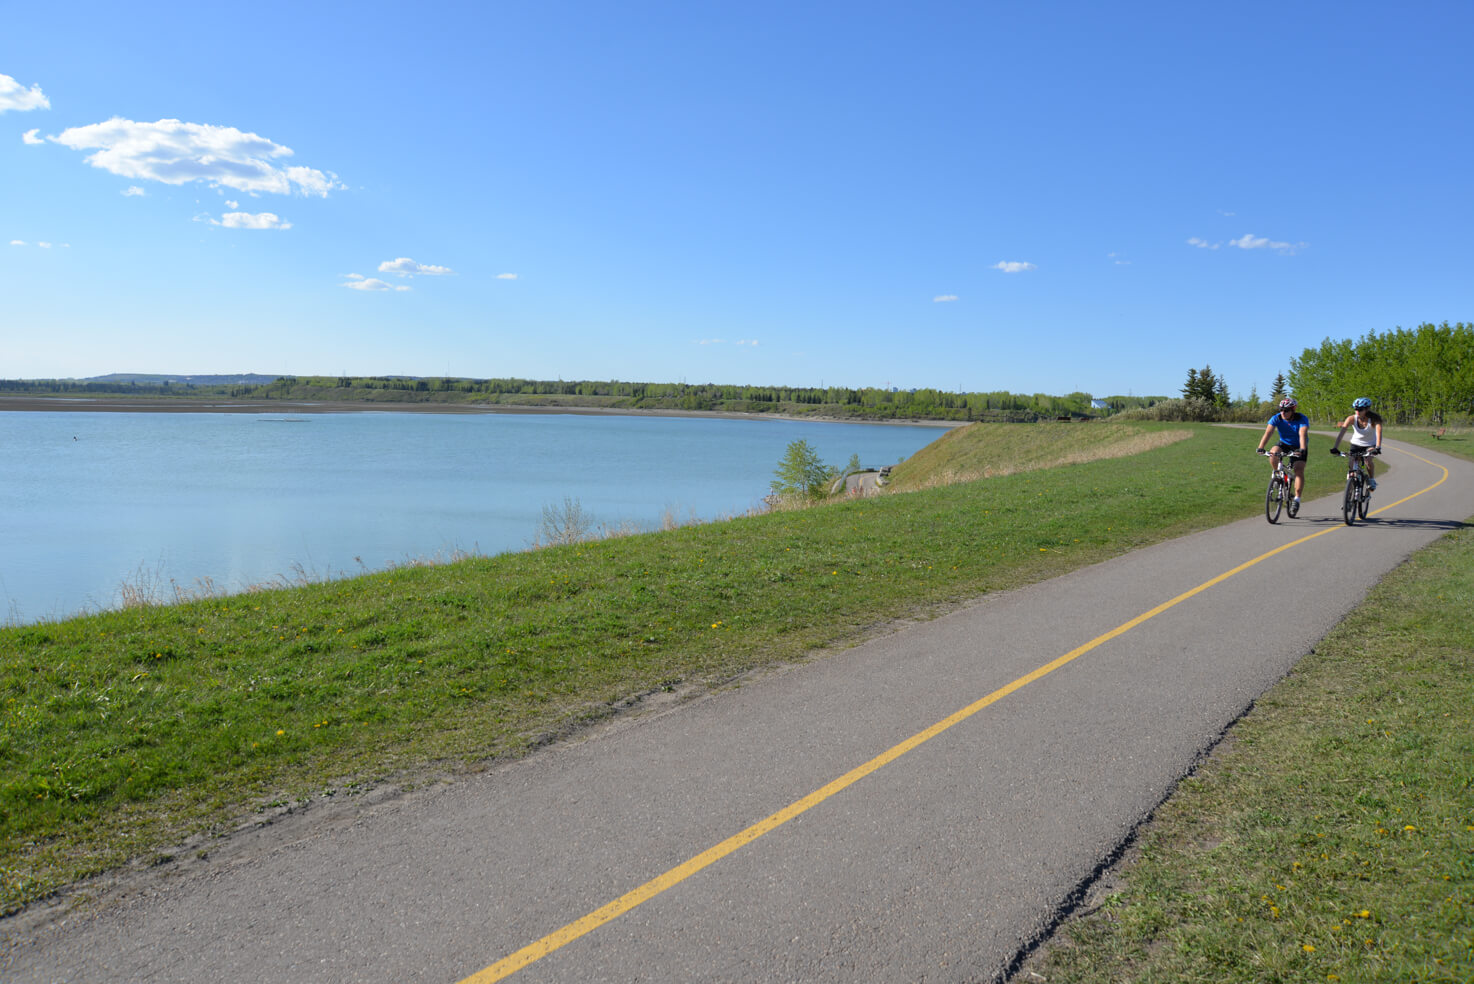 Things to do in Calgary in summer - Go for a bike ride